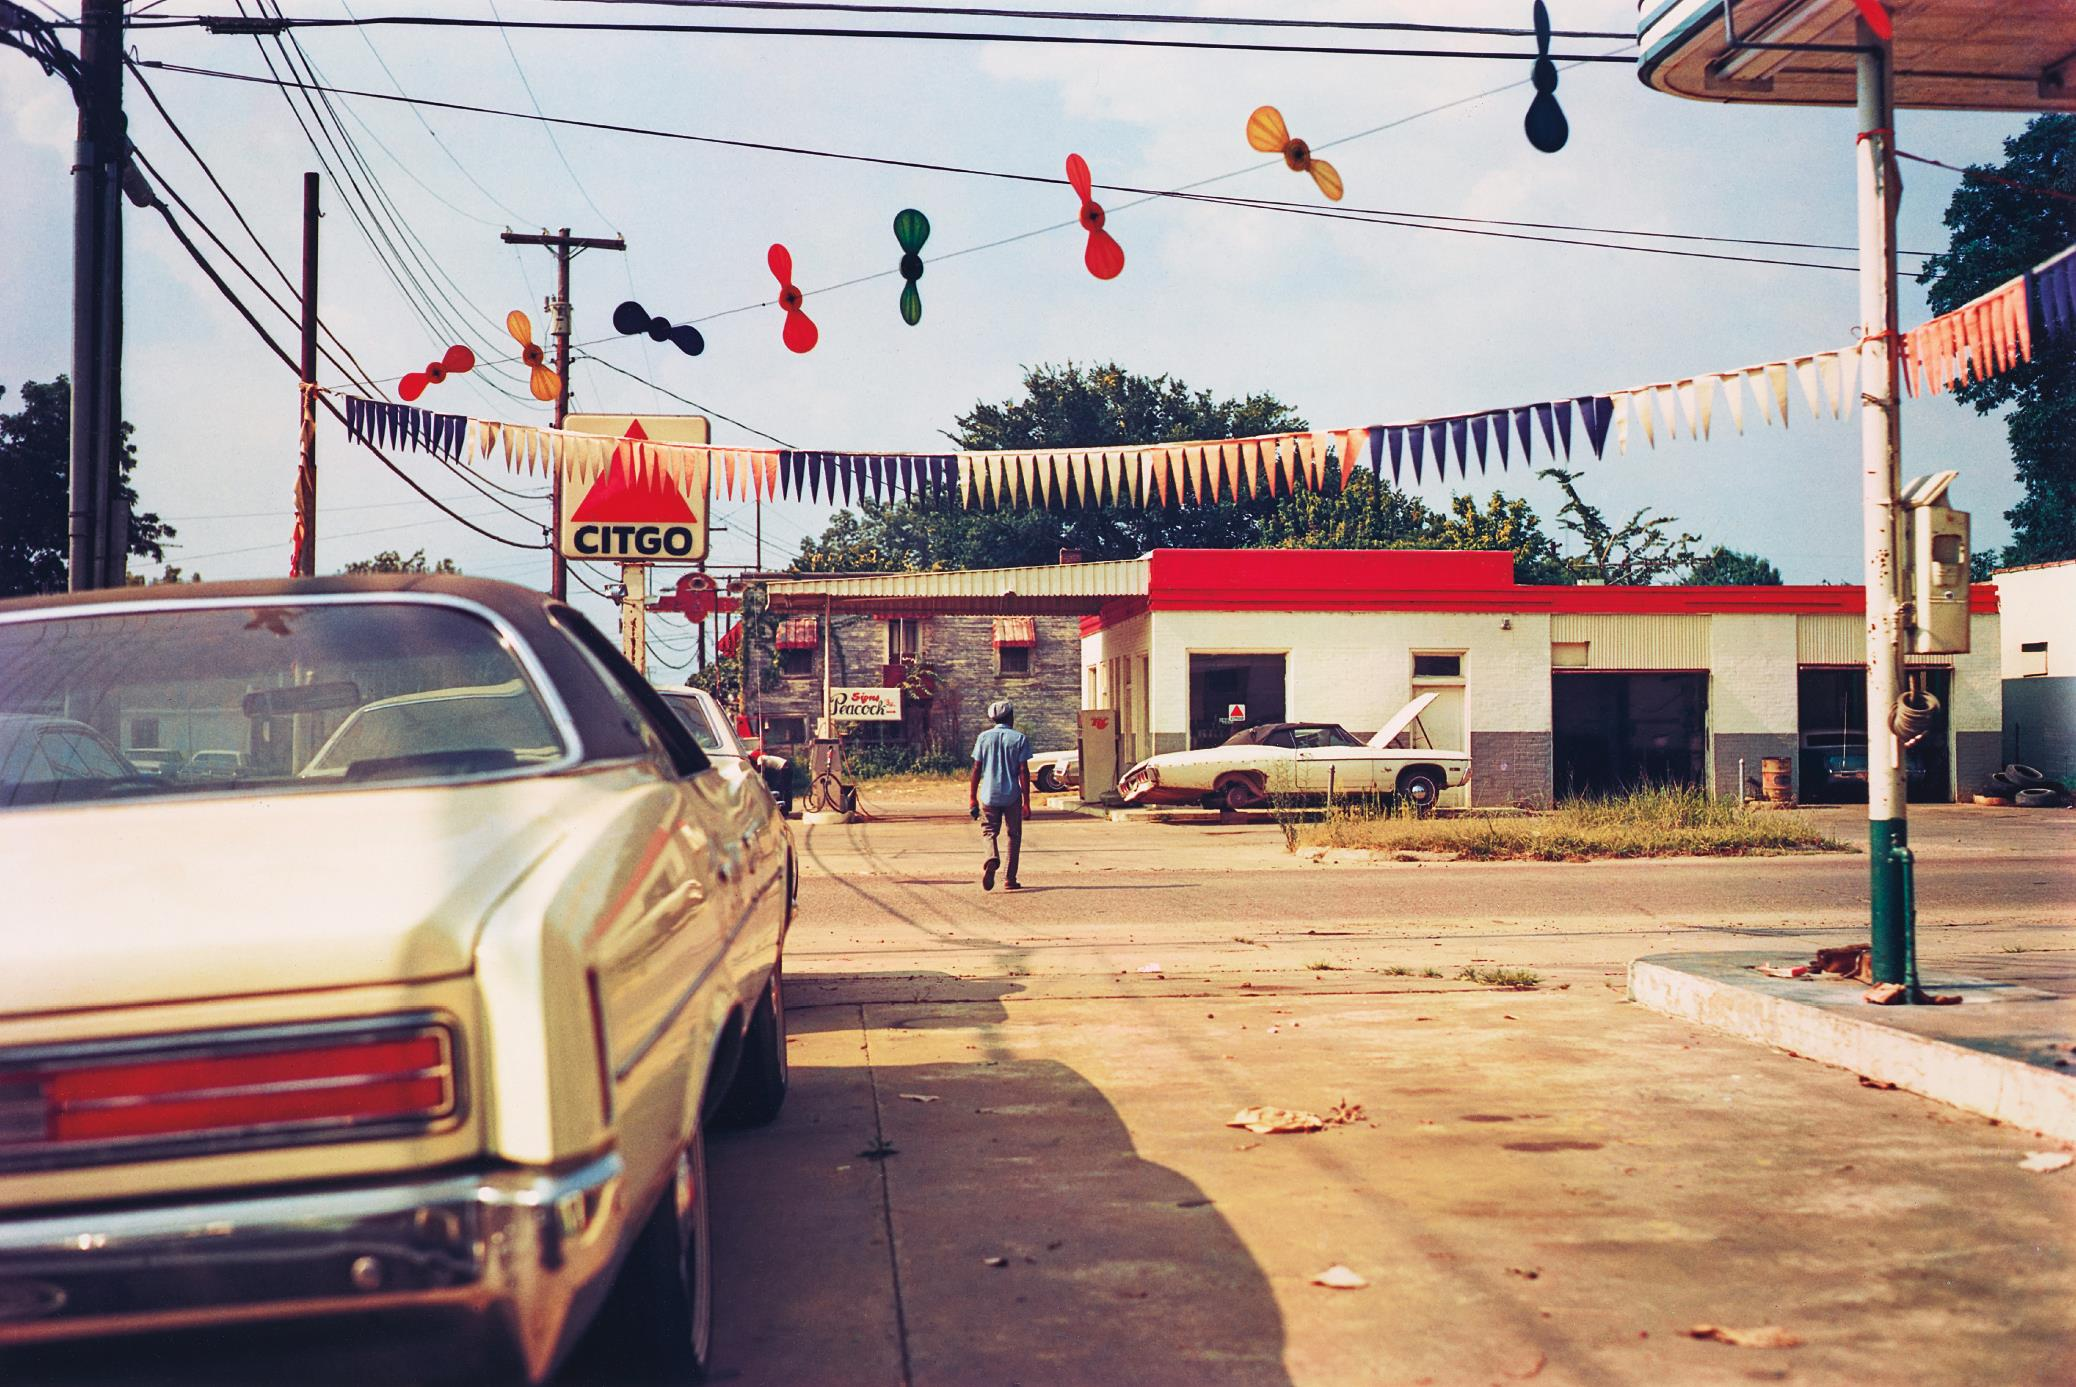 William Eggleston-Untitled (Citgo Gas Pump)-1976